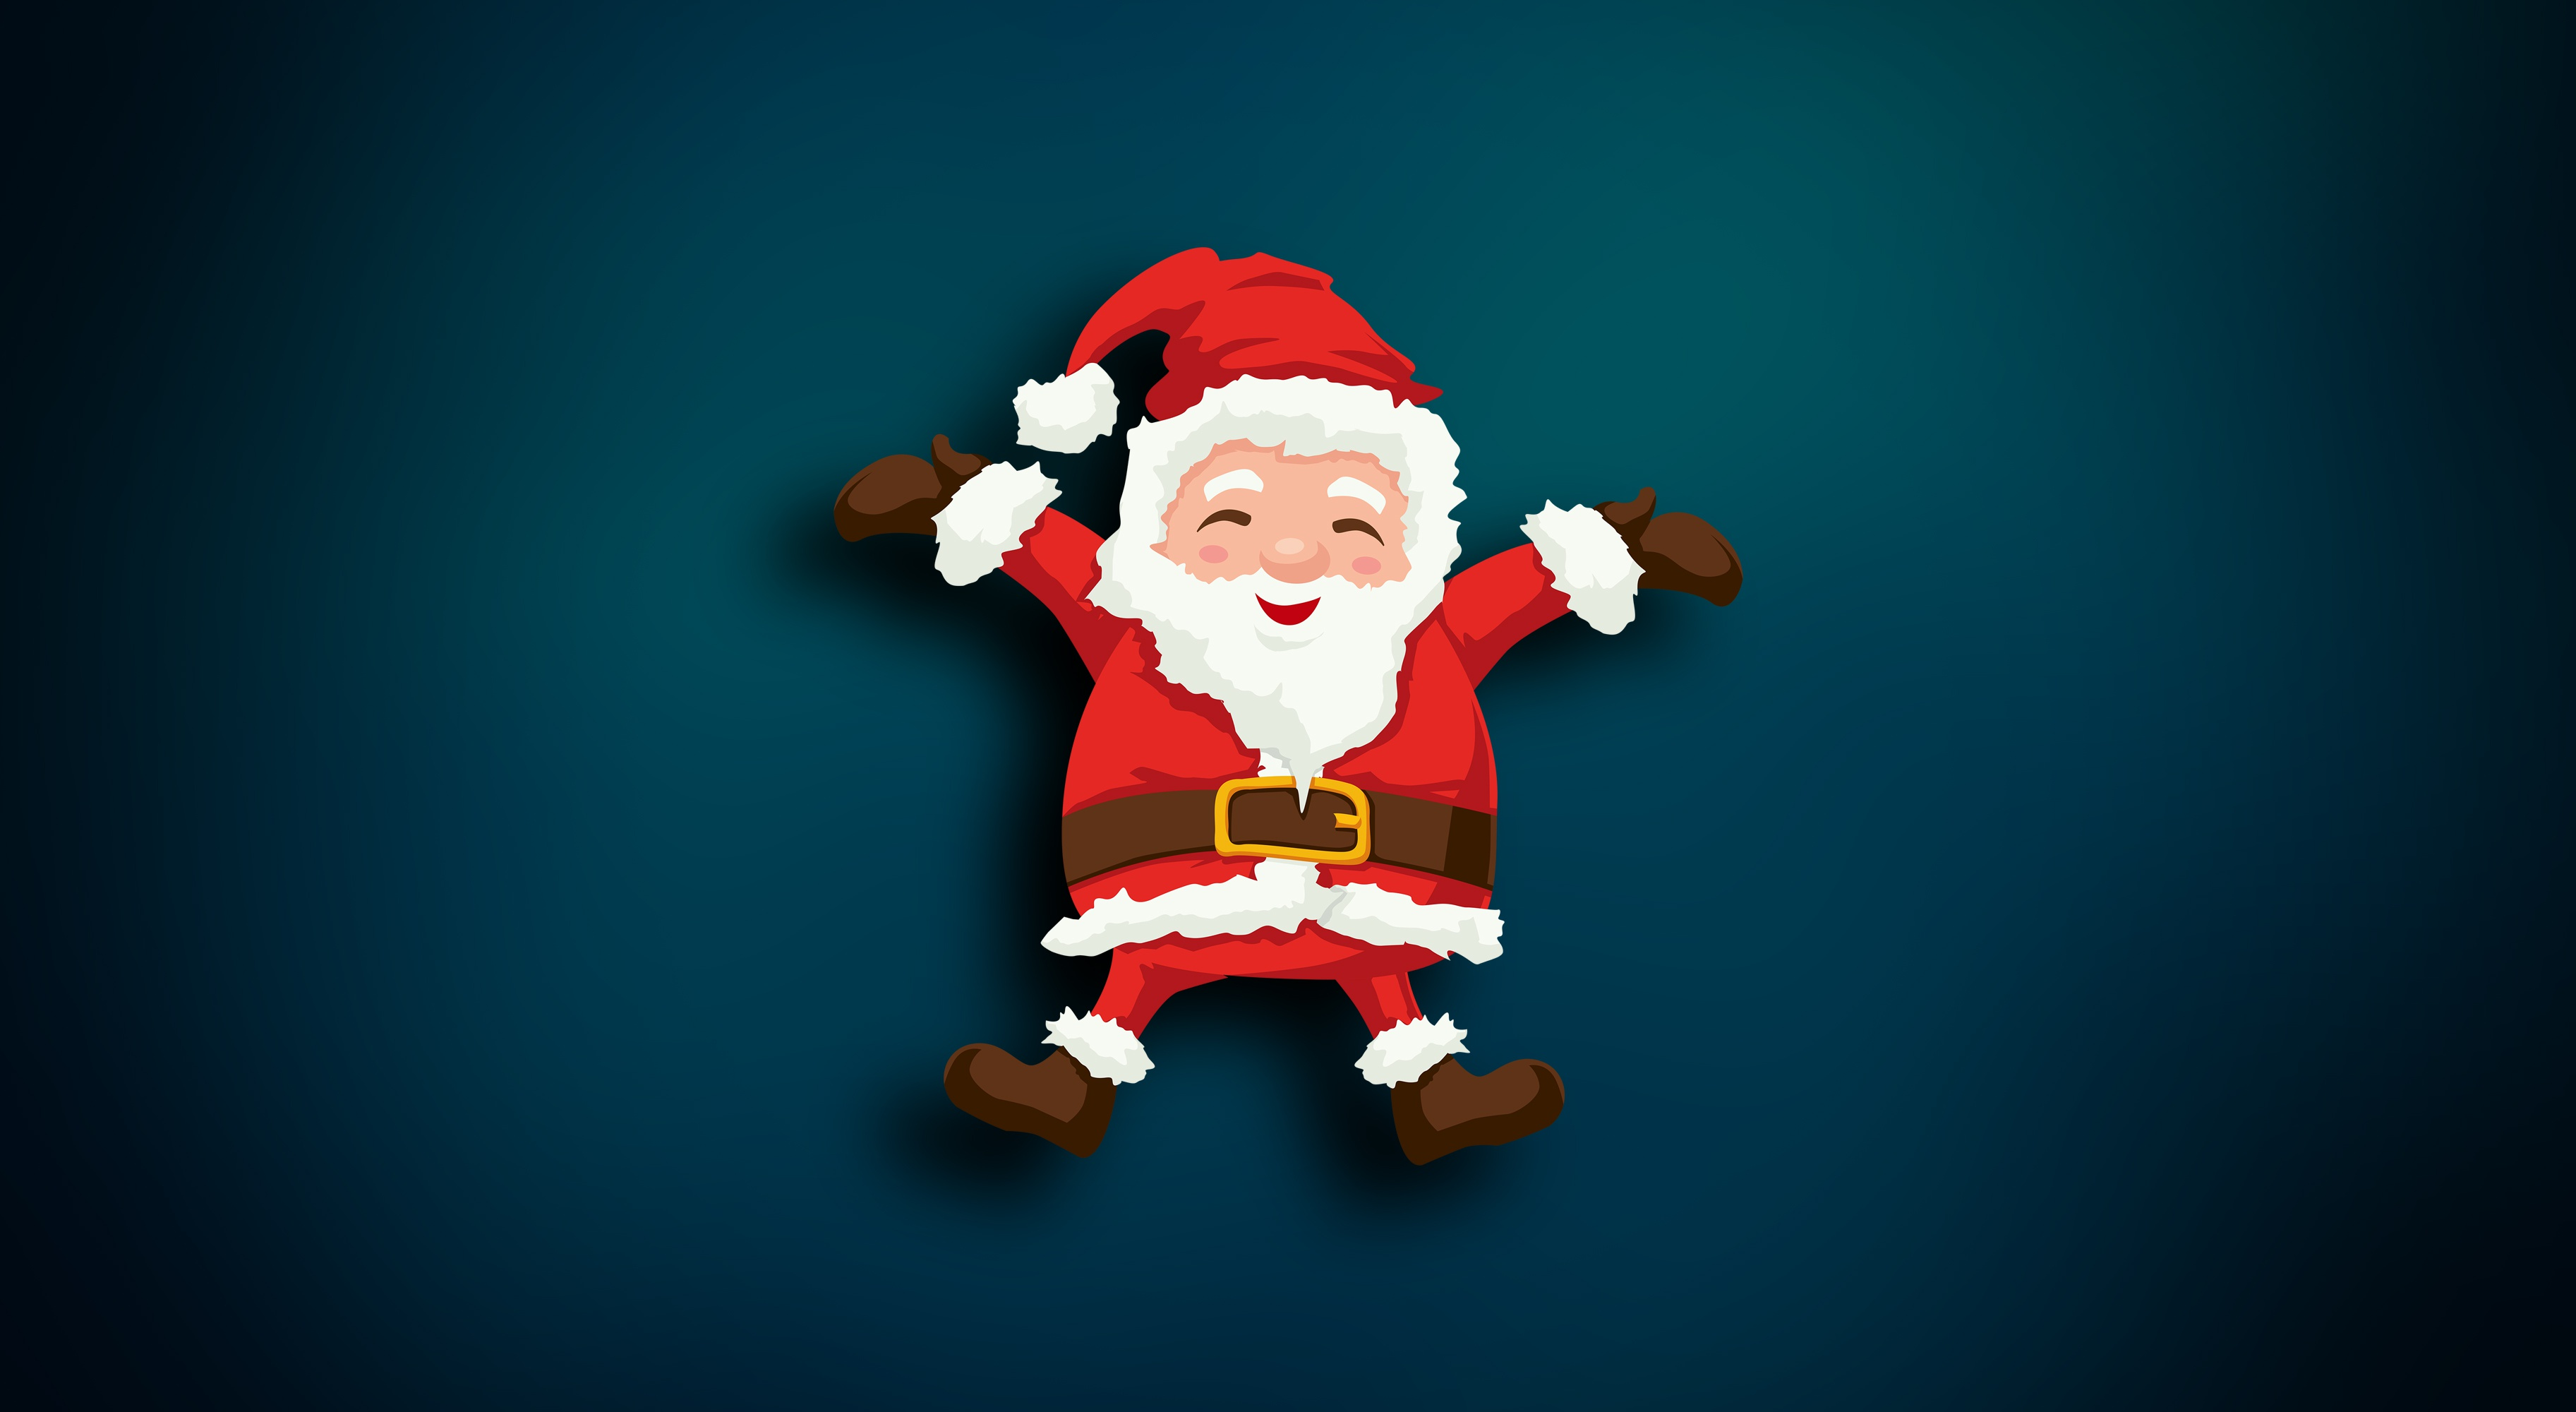 Santa claus background pictures Baby Book Ideas - Who Arted?